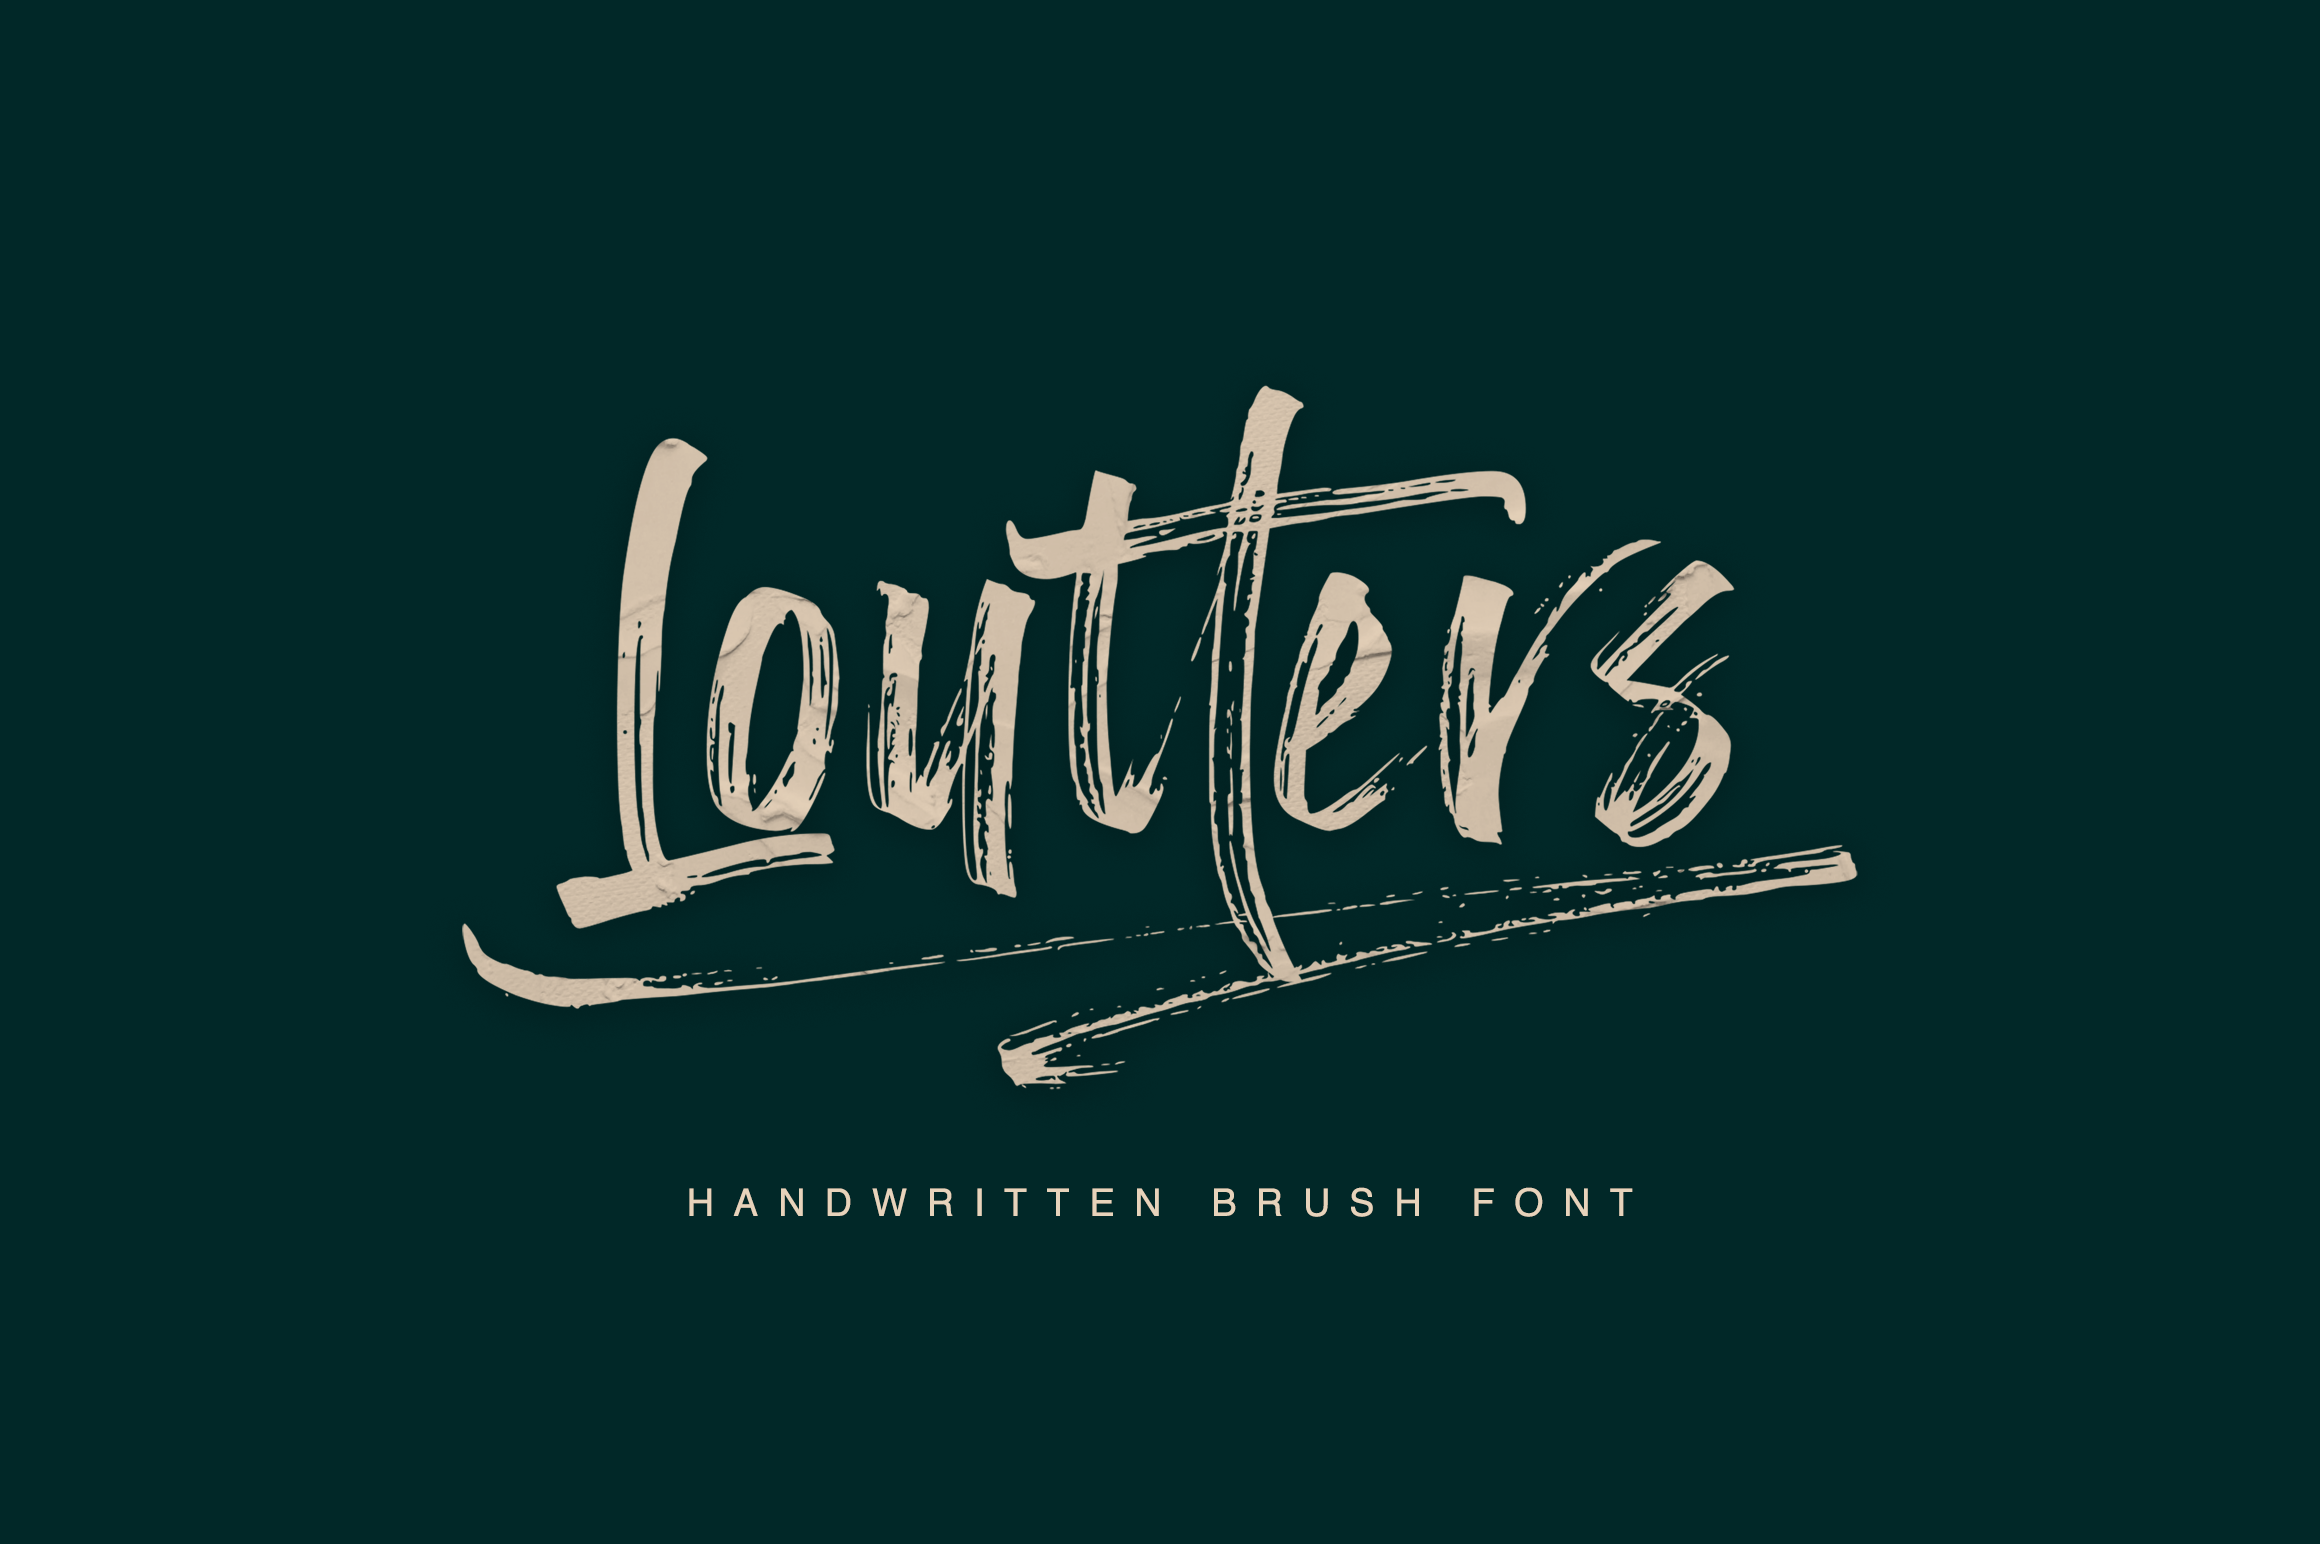 Loutters | Handwritten Brush Font example image 1